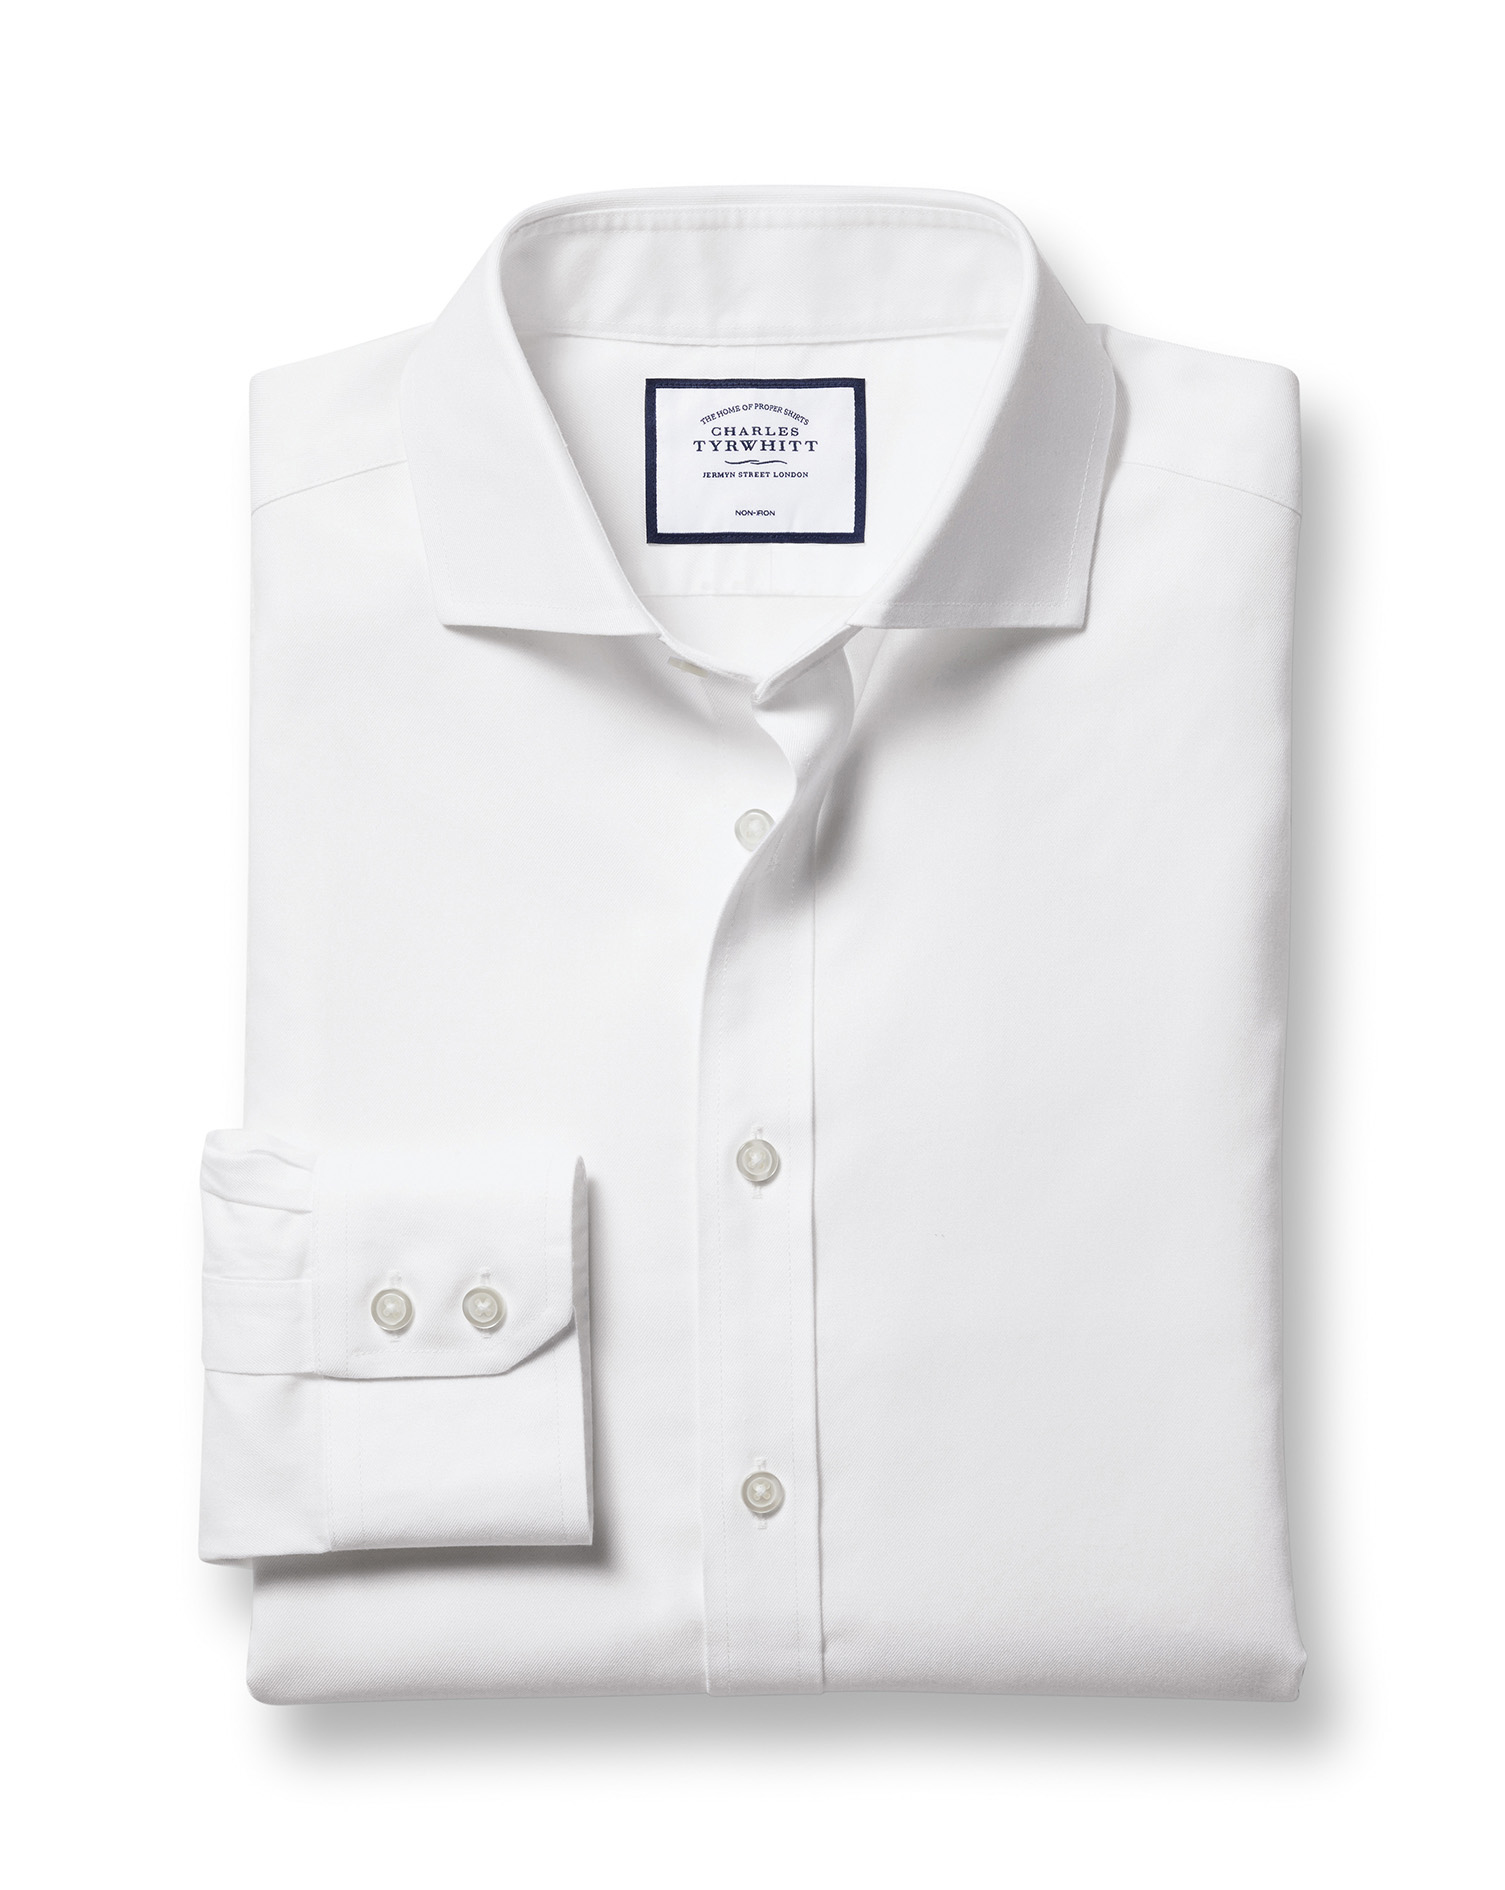 Extra Slim Fit Cutaway Non-Iron Twill White Cotton Formal Shirt Double Cuff Size 16.5/34 by Charles